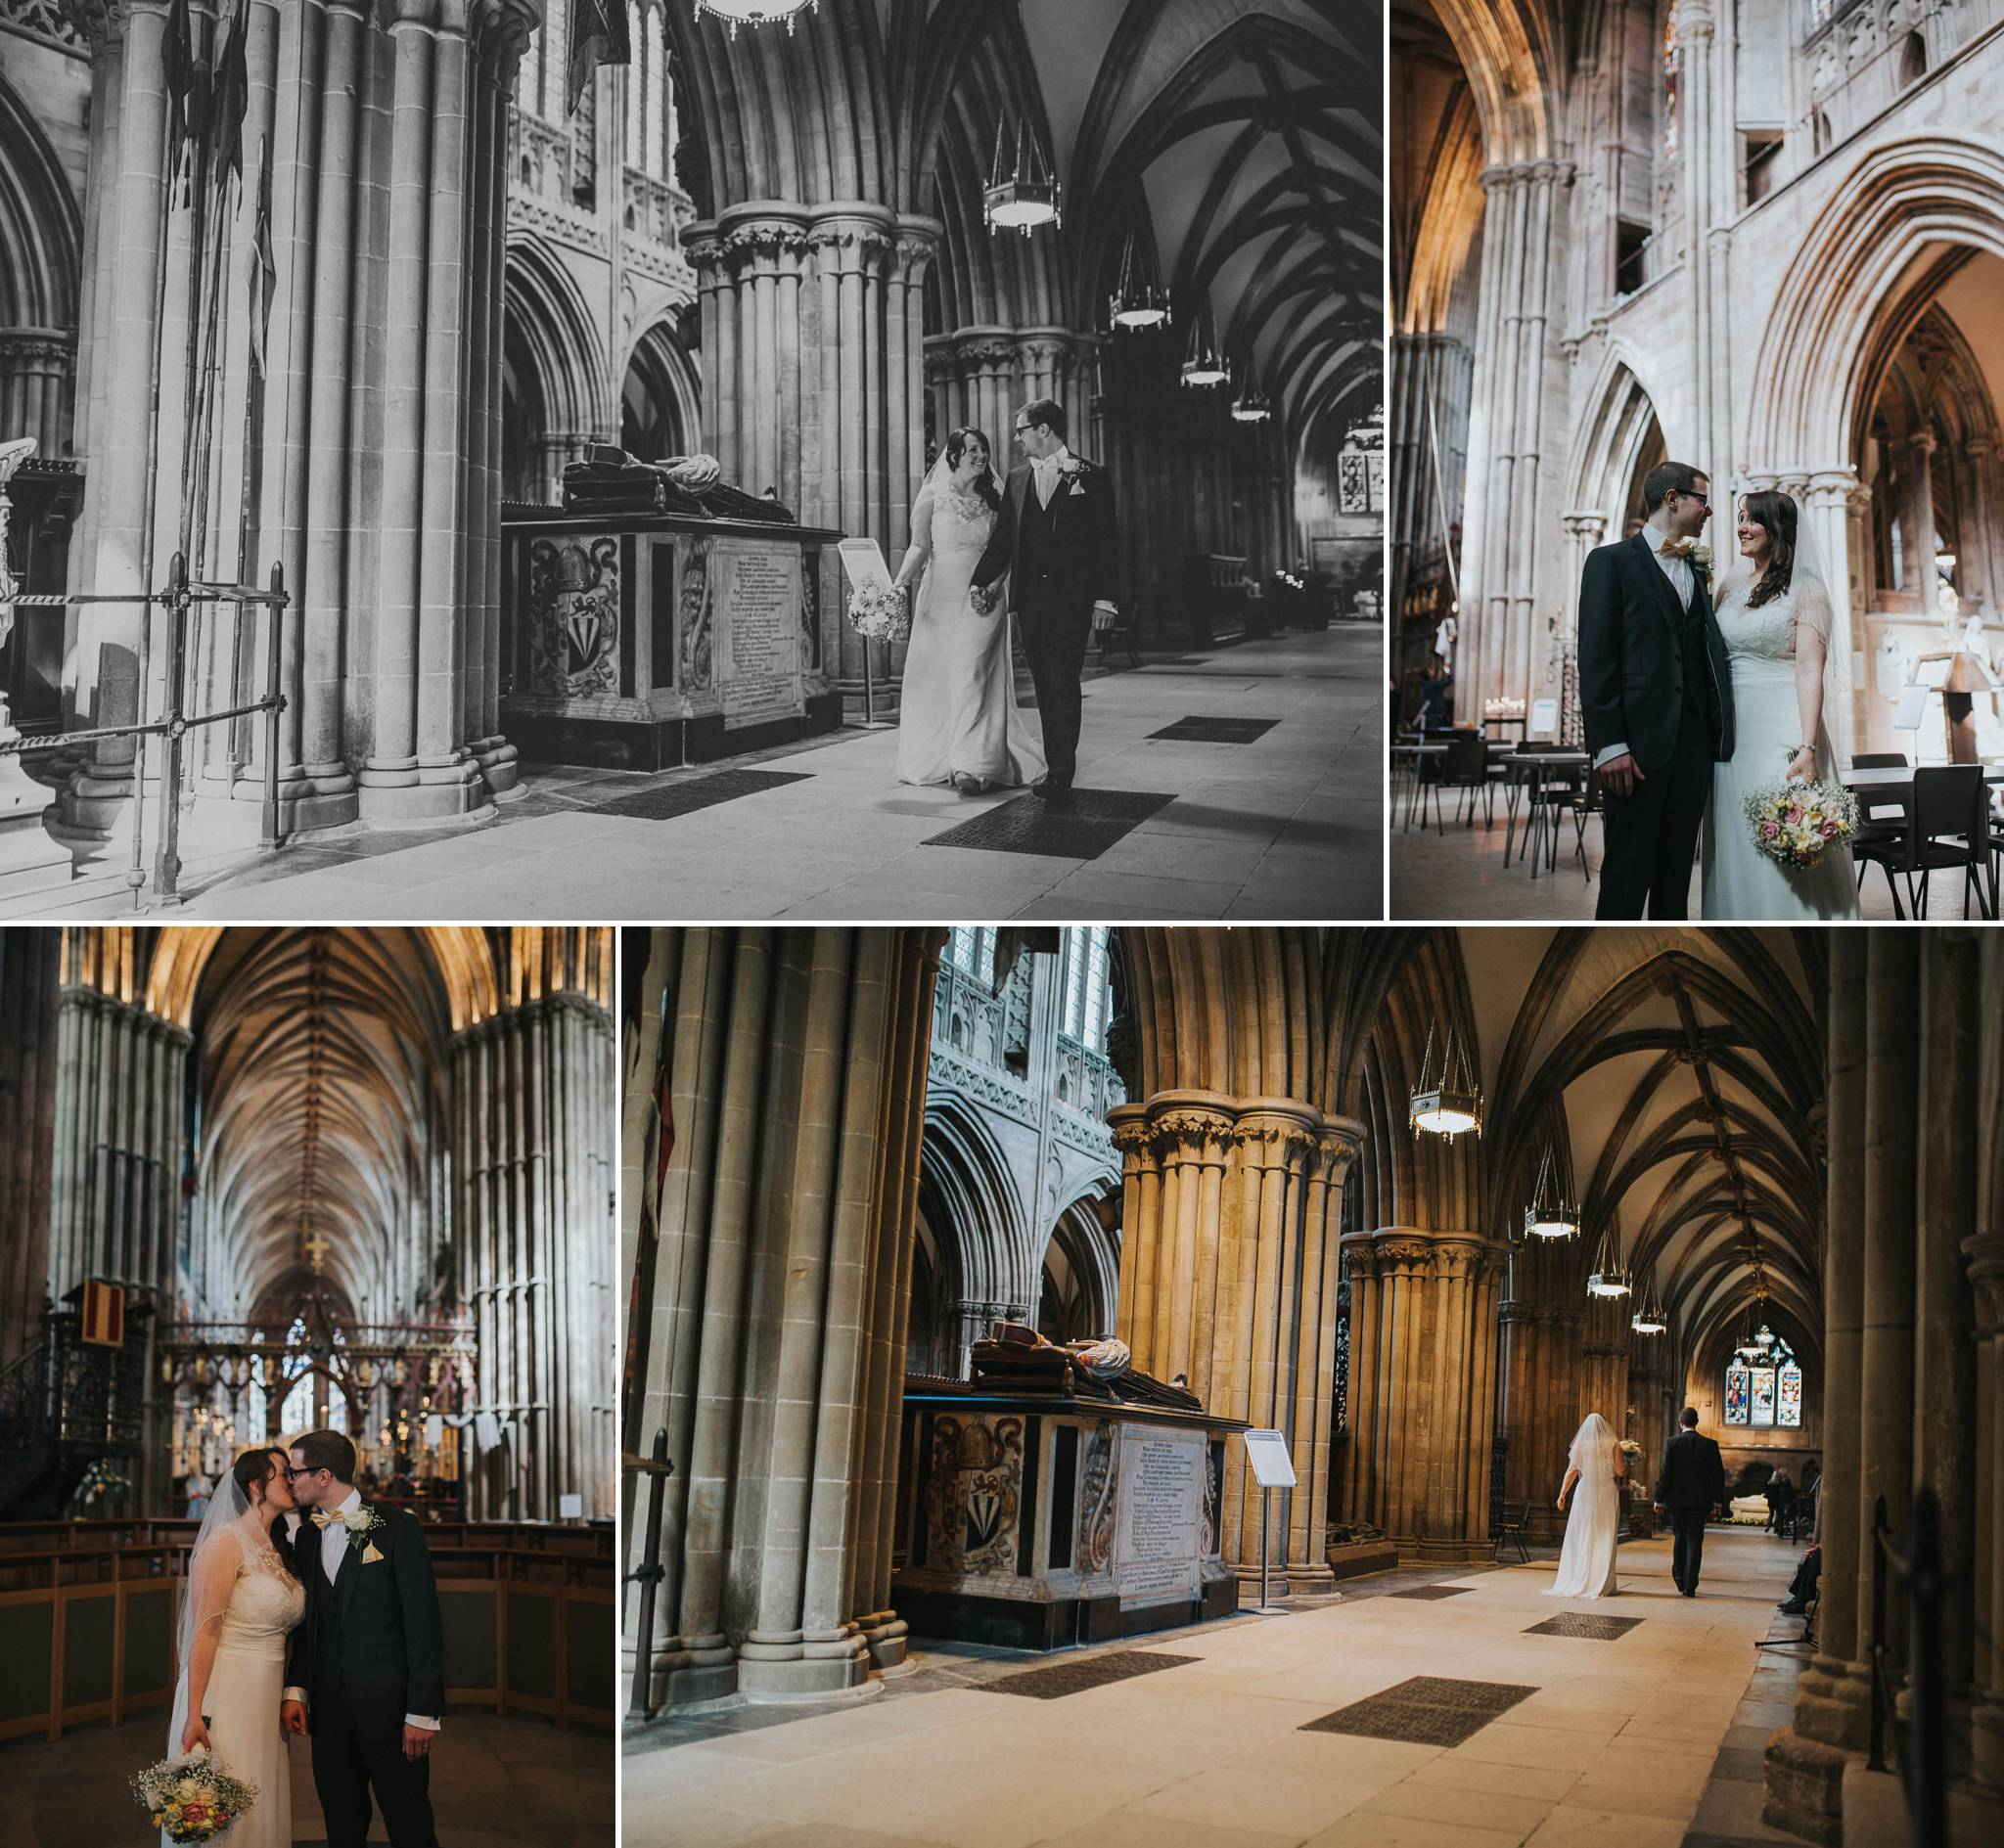 lichfield-cathedral-wedding-photography 12.jpg